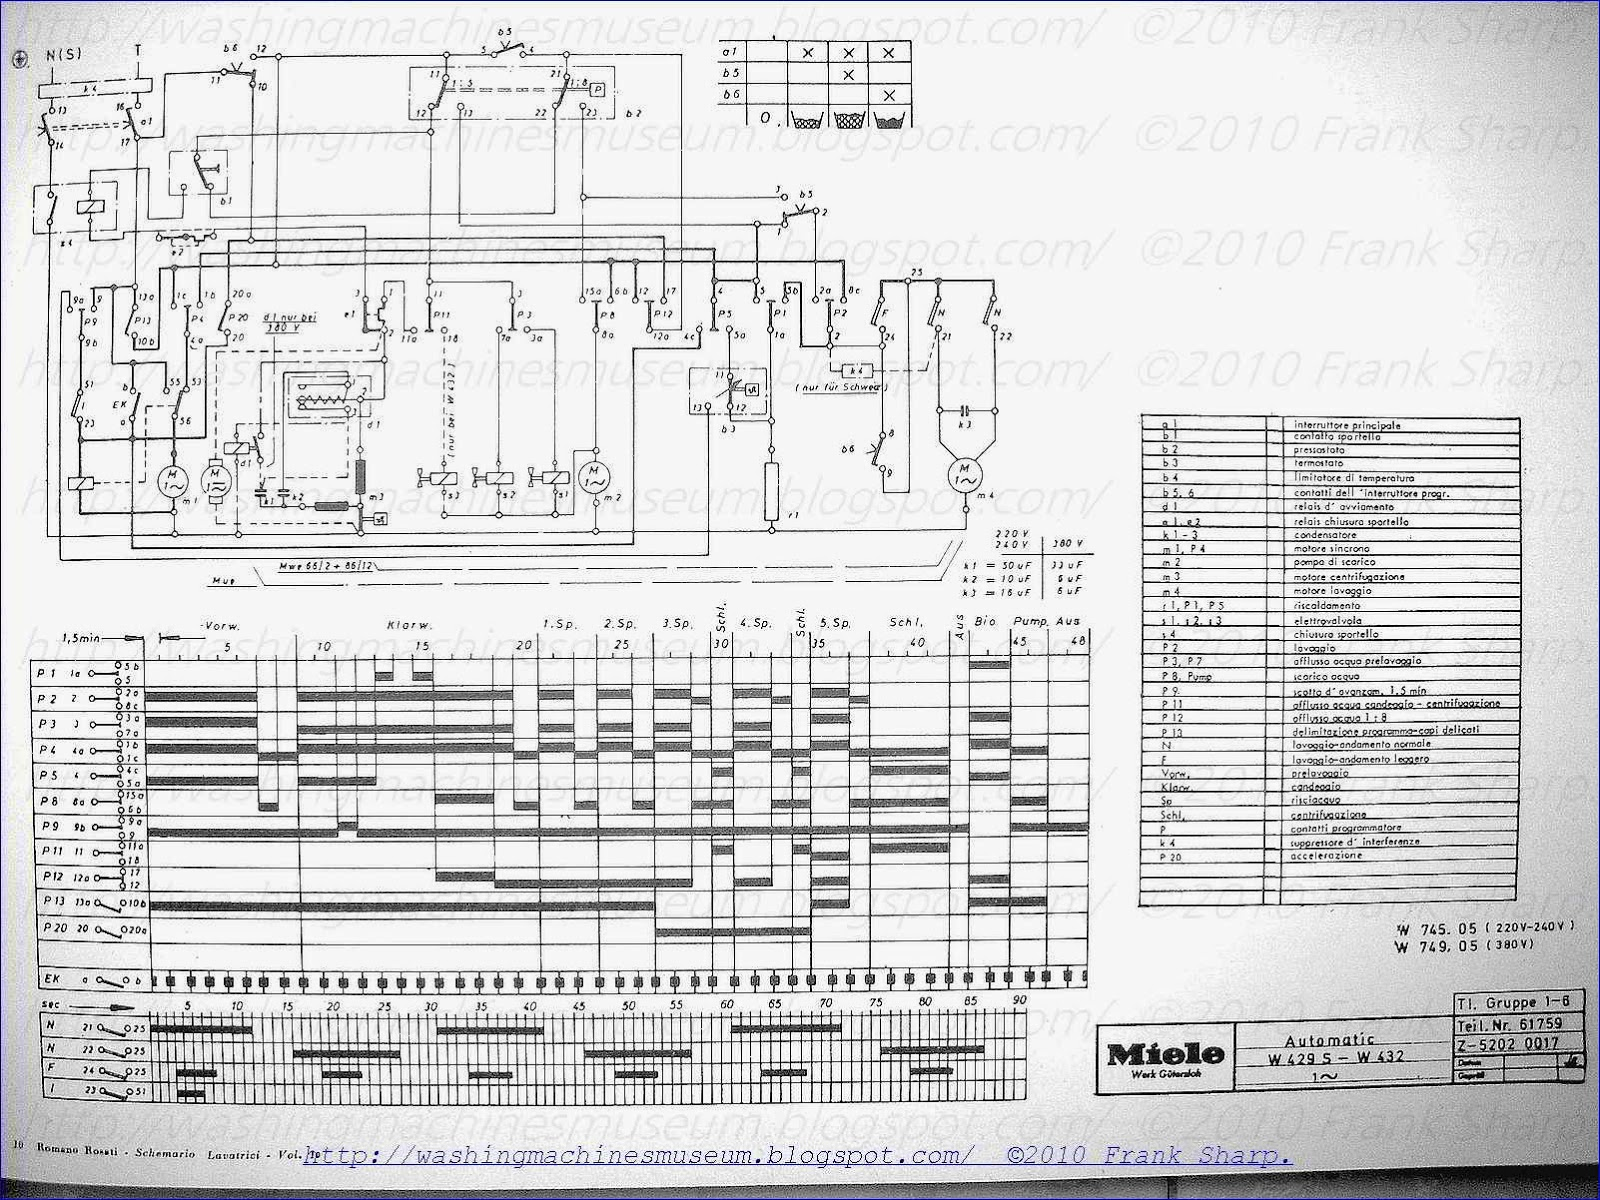 Miele Dryer Wiring Diagram Wire Center Roper Electric Washer Rama Museum Automatic W429s W432 Schematic Rh Washingmachinesmuseum Blogspot Com Plug